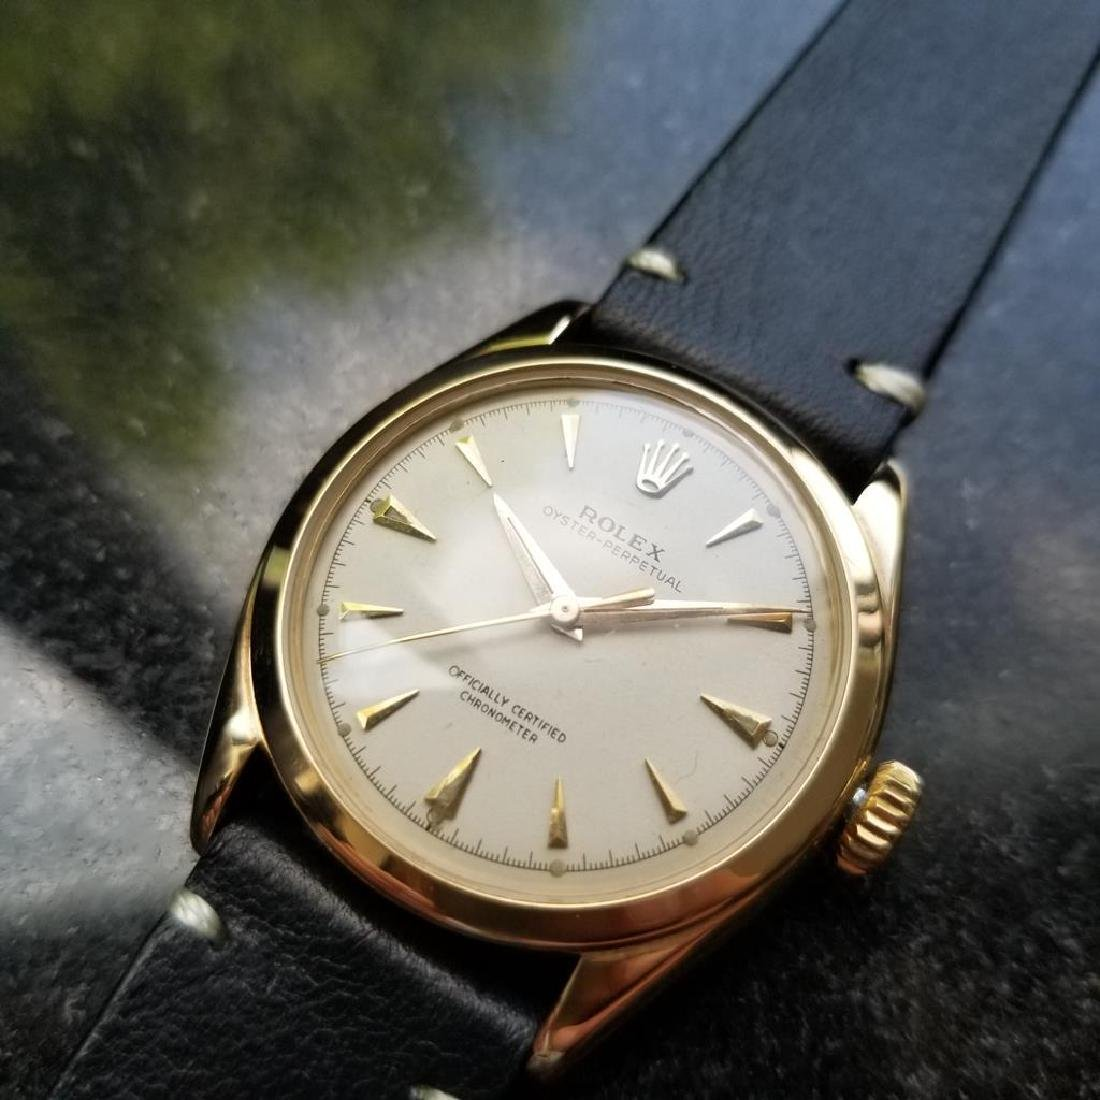 ROLEX Men's 14K Solid Gold Oyster Perpetual 6084